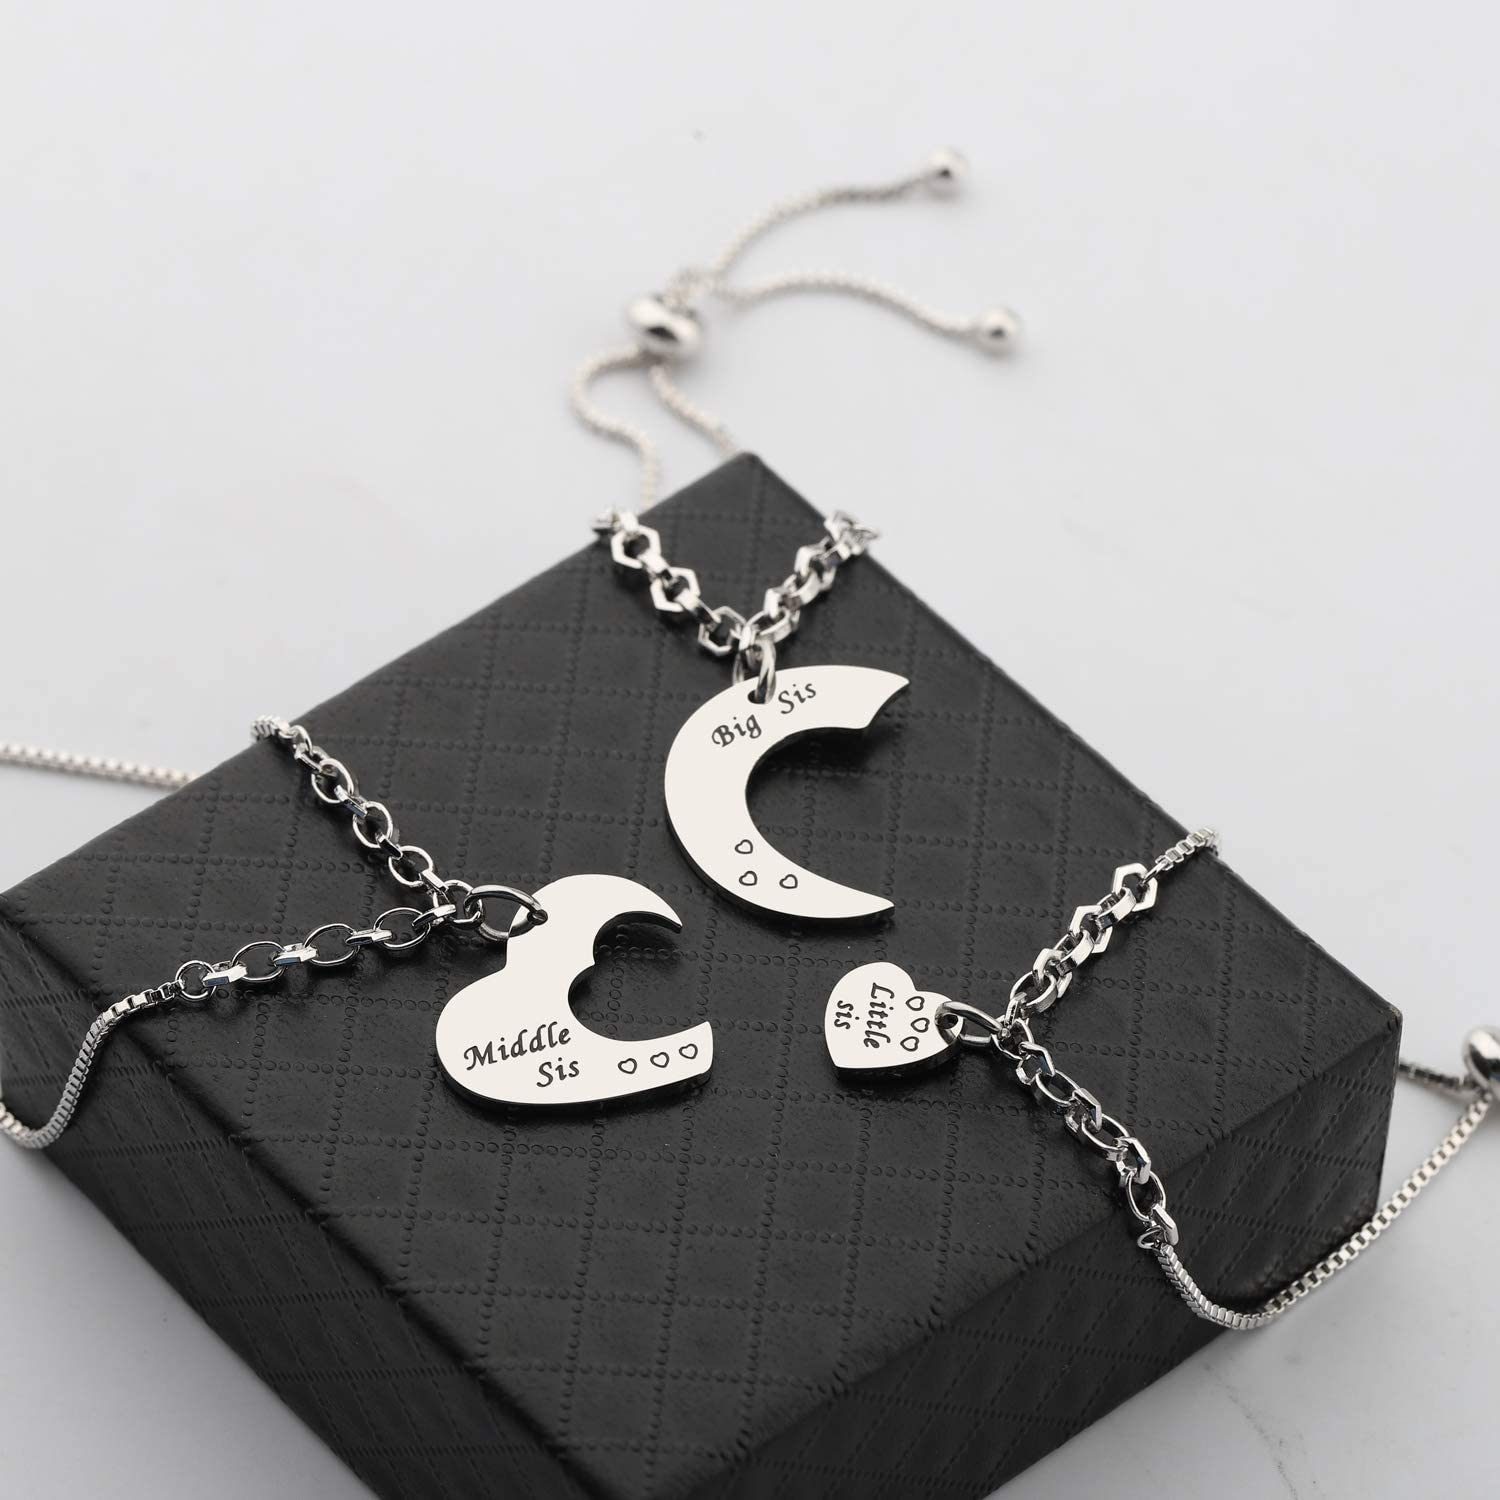 FUSTMW Sisters Gifts The Love Between Sisters is Forever 3 Sisters Keychain Set Gift for Big sis Mid Sis Lil Sister Jewelry